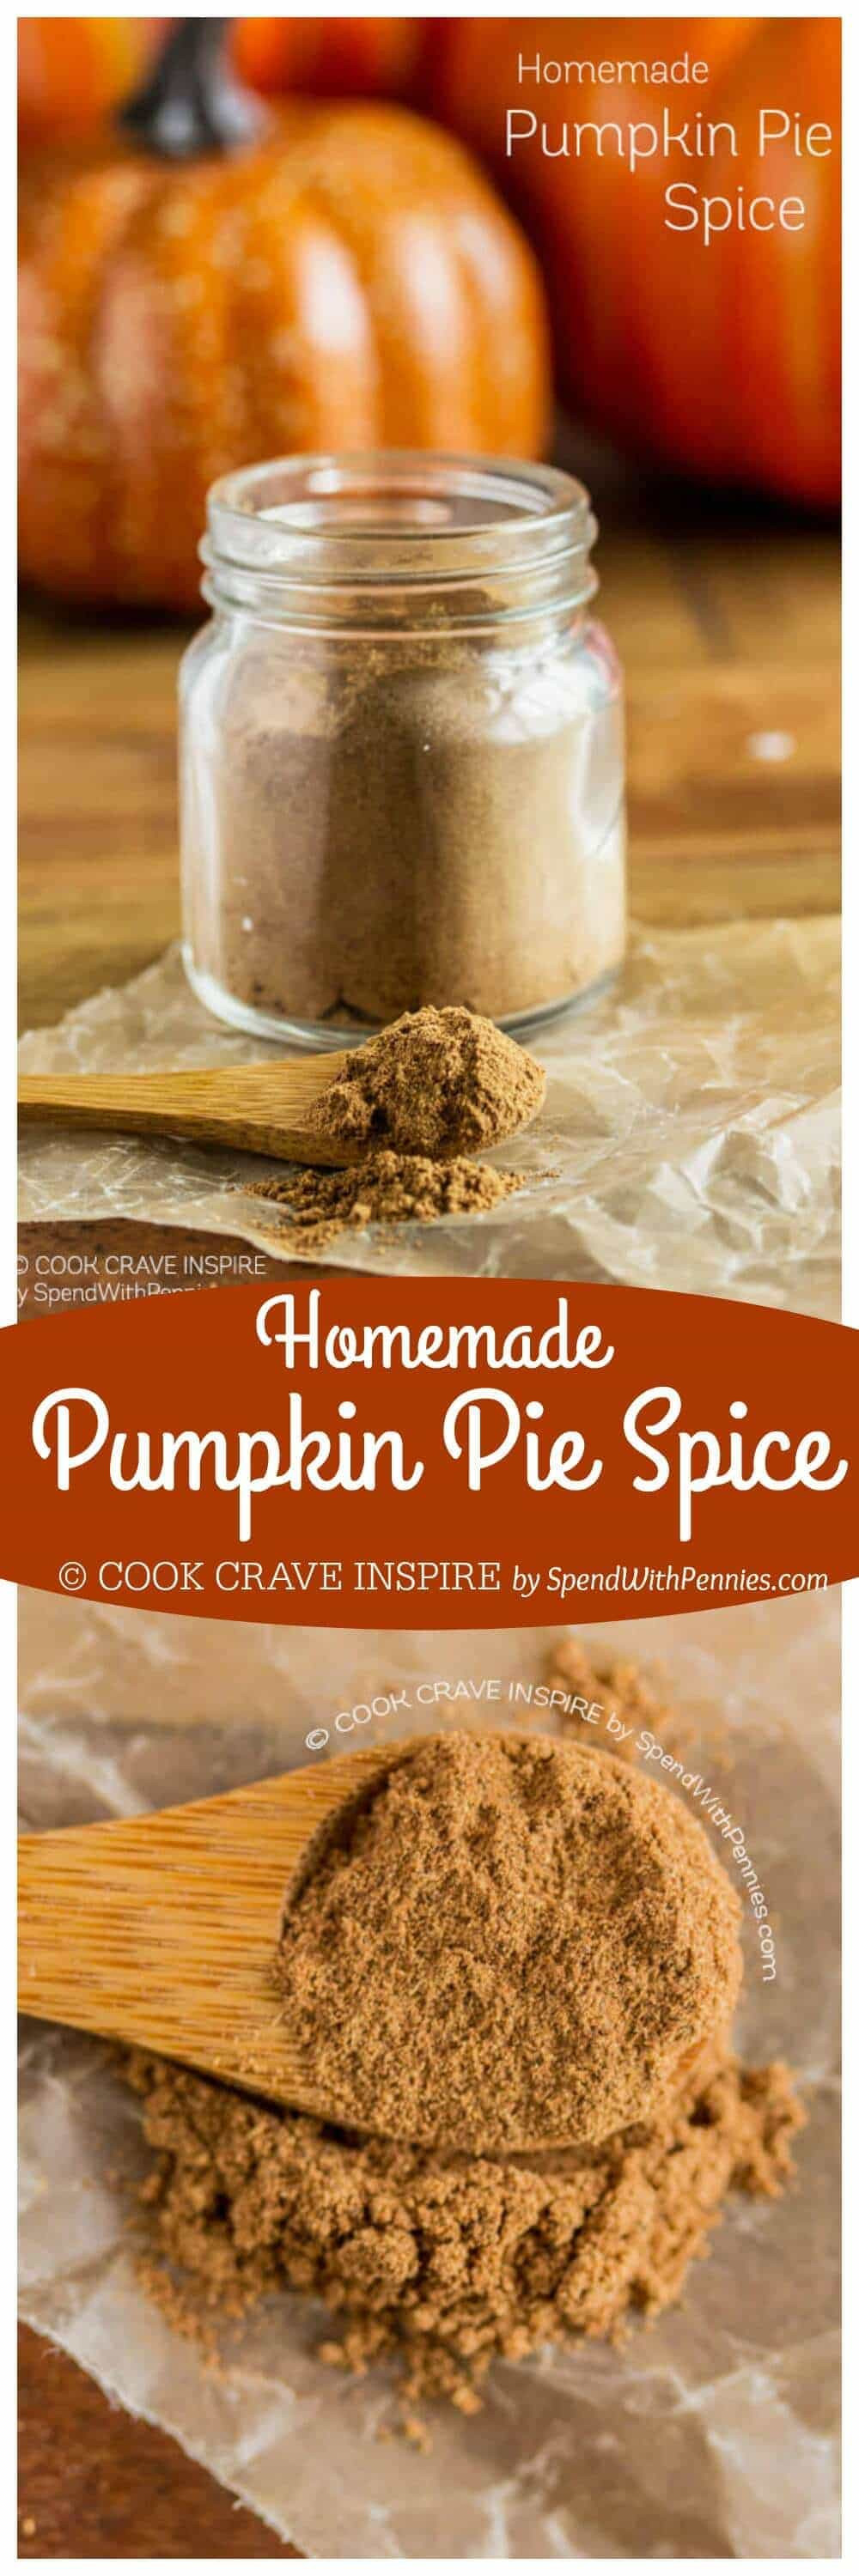 Homemade Pumpkin Pie Spice  Homemade Pumpkin Pie Spice Recipe Spend With Pennies